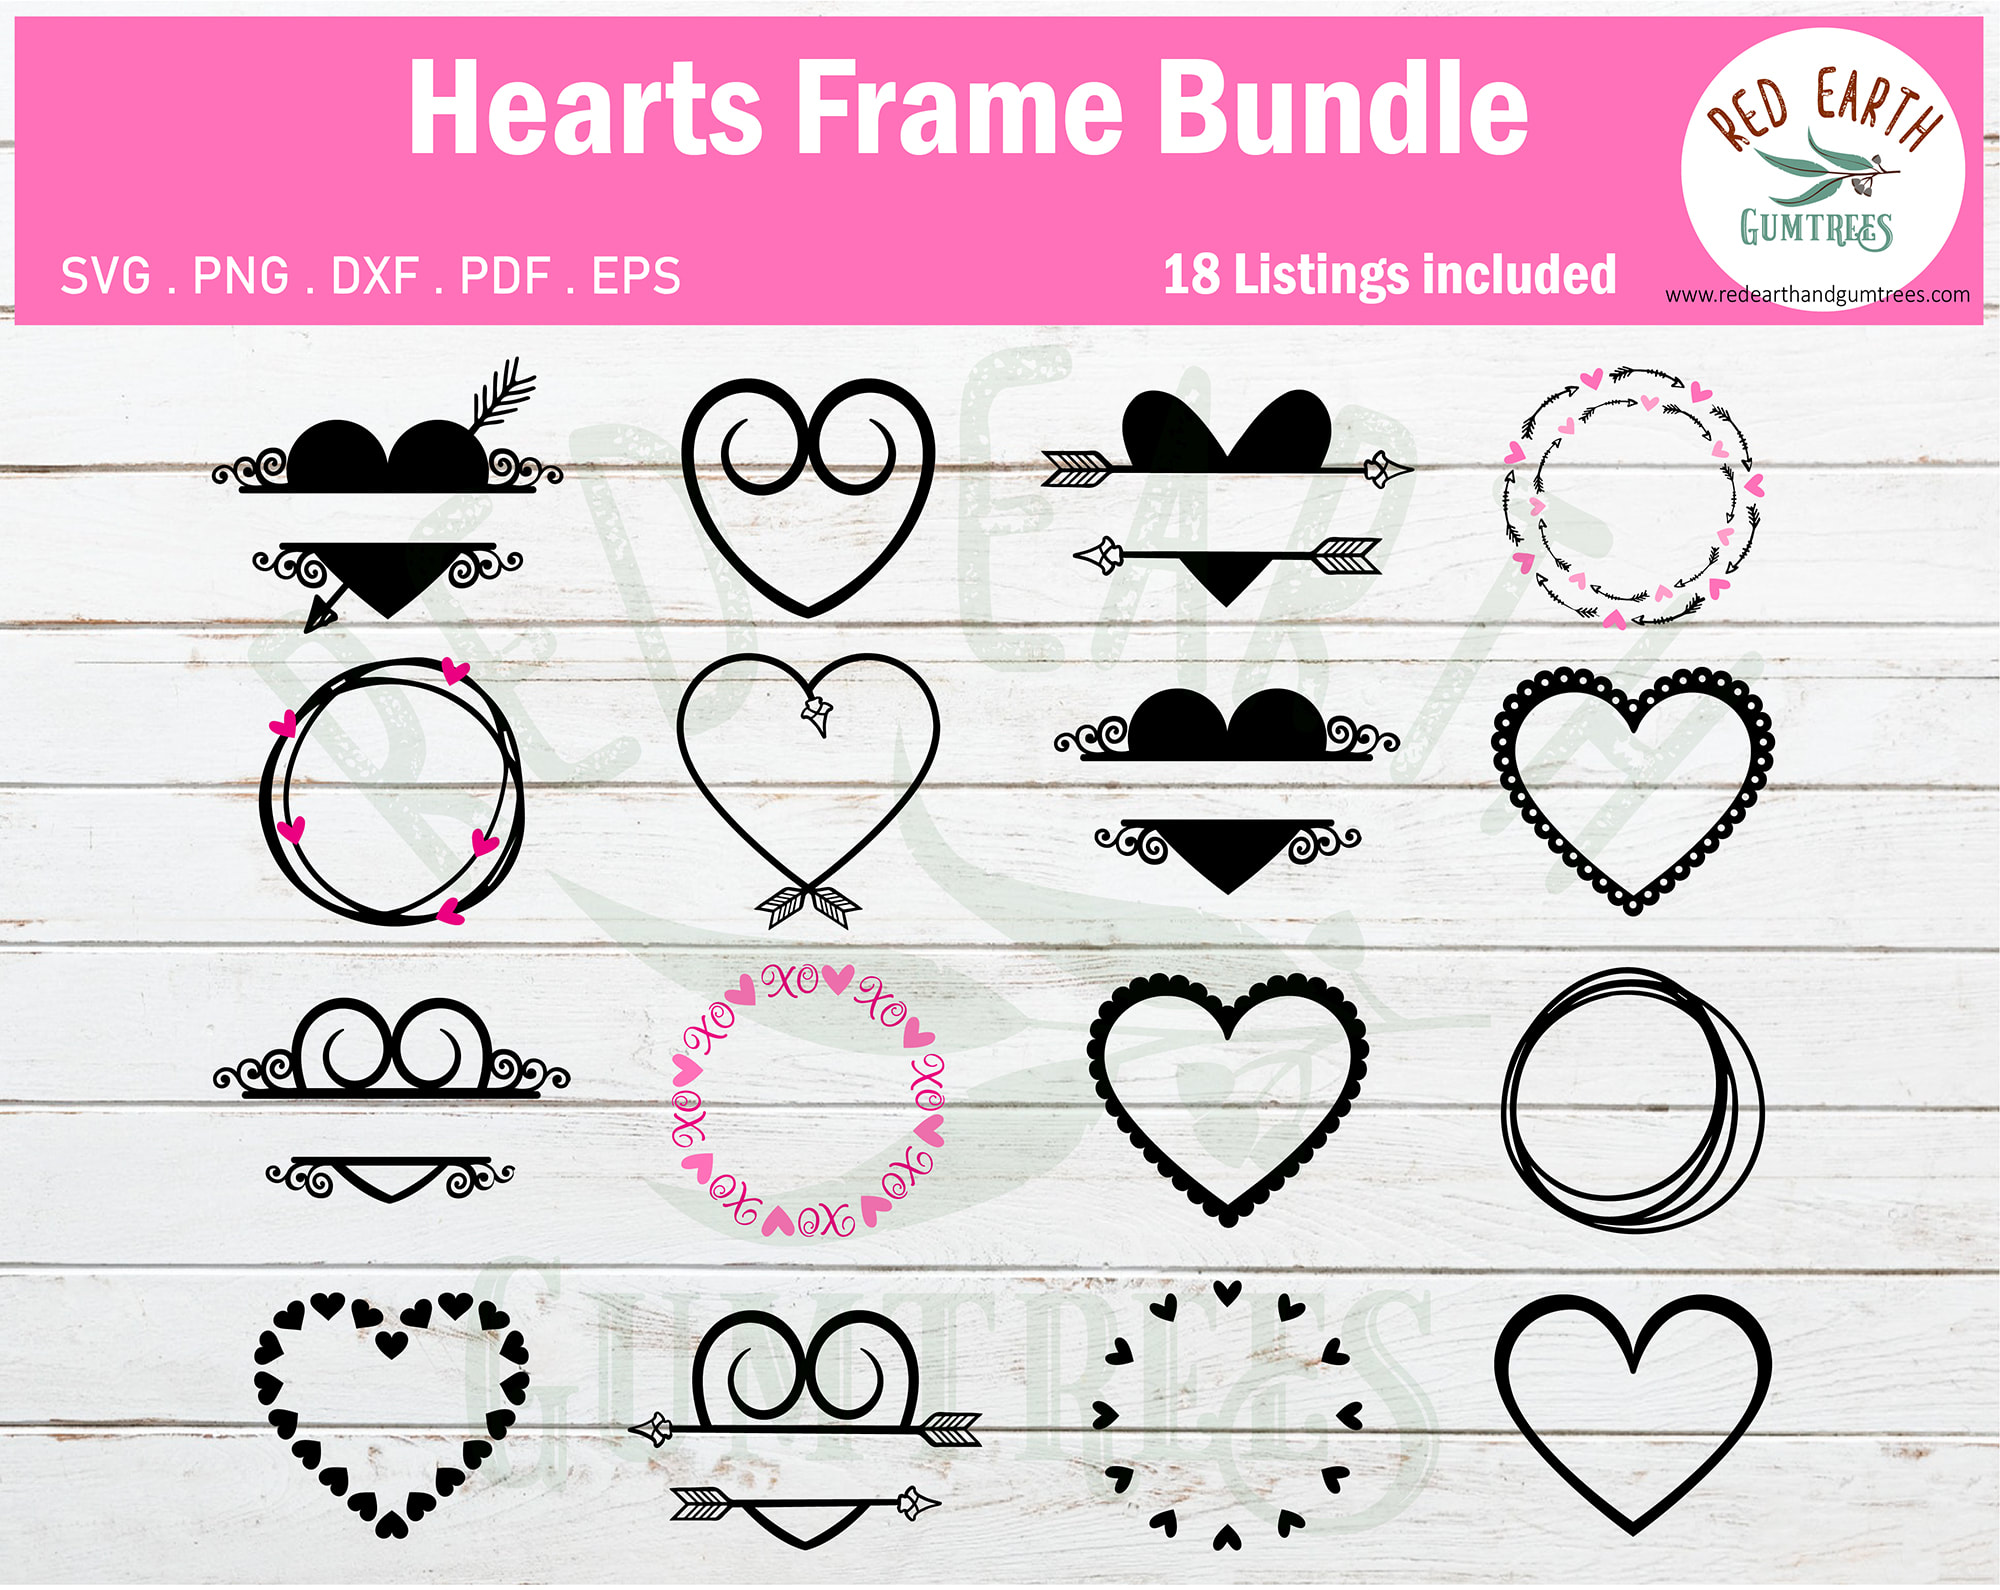 Valentines Frames Valentines Bundle Heart Frame Svg Heart Split Frame Heart Split Svg Heart Monogram Heart Circle Frame Circle Frame Svg Heart Arrow Svg Valentines Heart Hearts Bundle Svg Xoxo Frame Svg Arrow Circle Monogram Frame Svg Arrow Bundle Svg